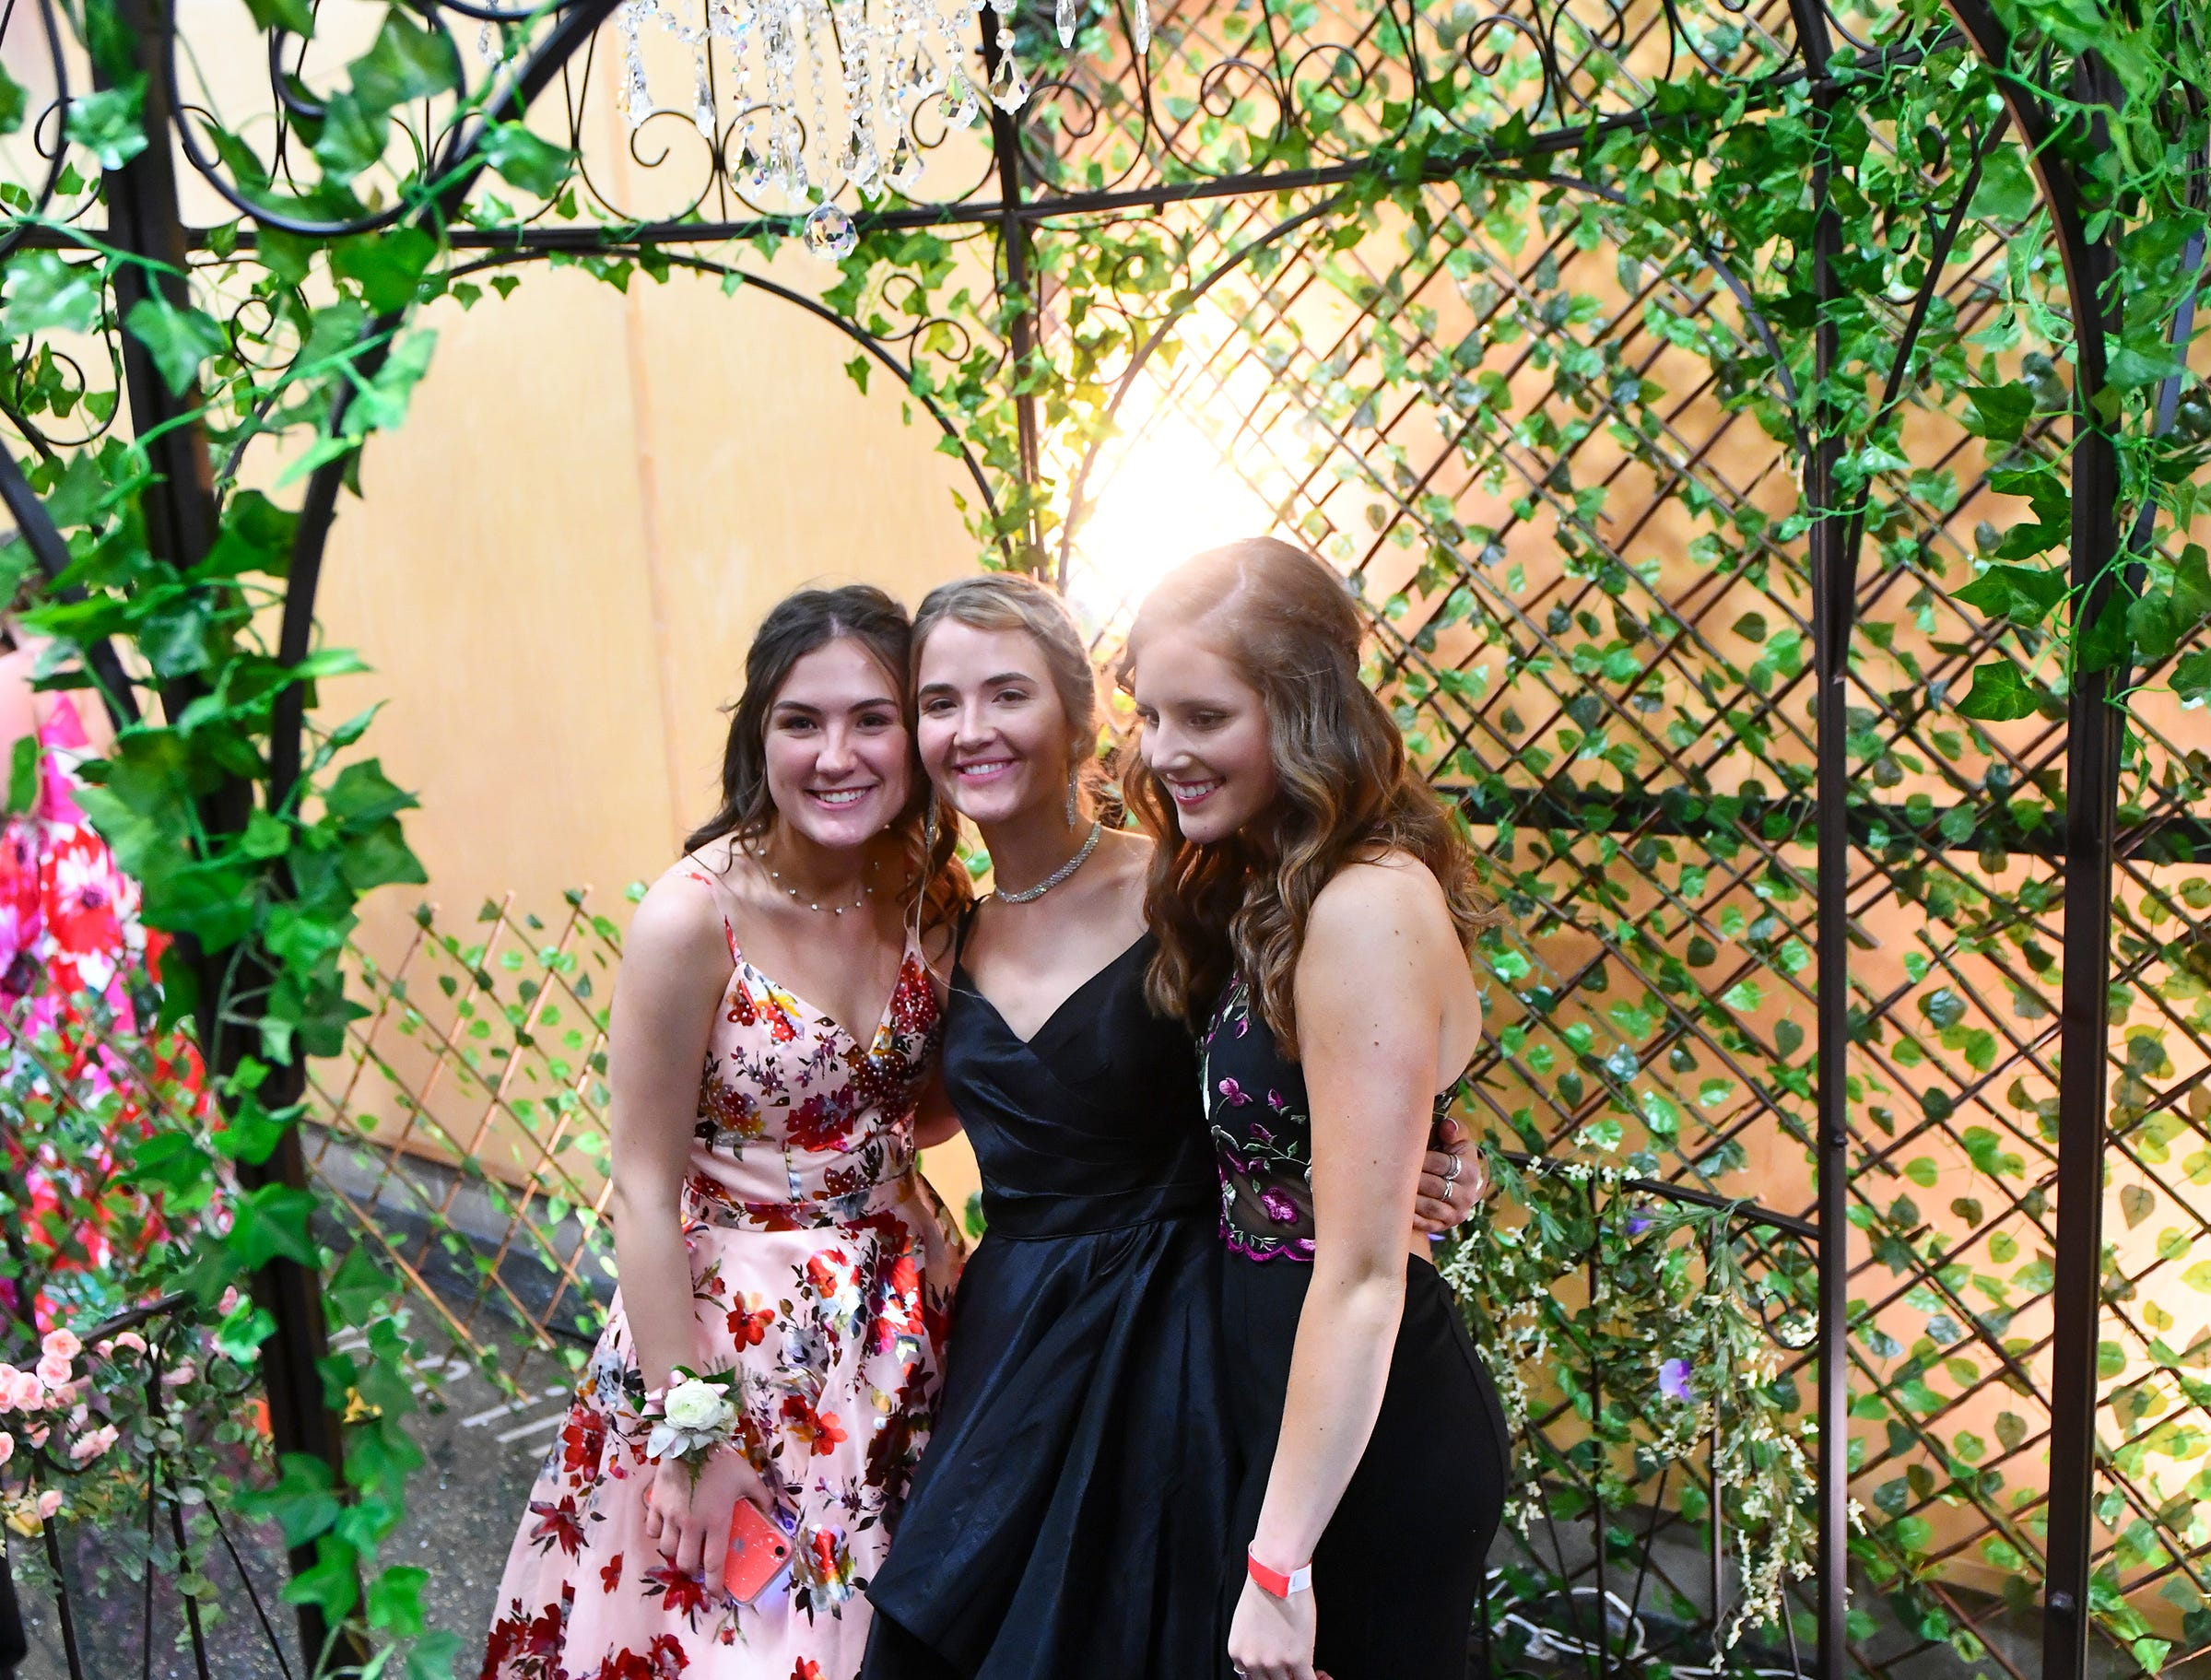 Hannah Guhlke, Makenzi Hader and Maia Hanbrouck pose for photos under a gazebo following prom grand march Saturday, May 11, at Sauk Rapids-Rice High School.